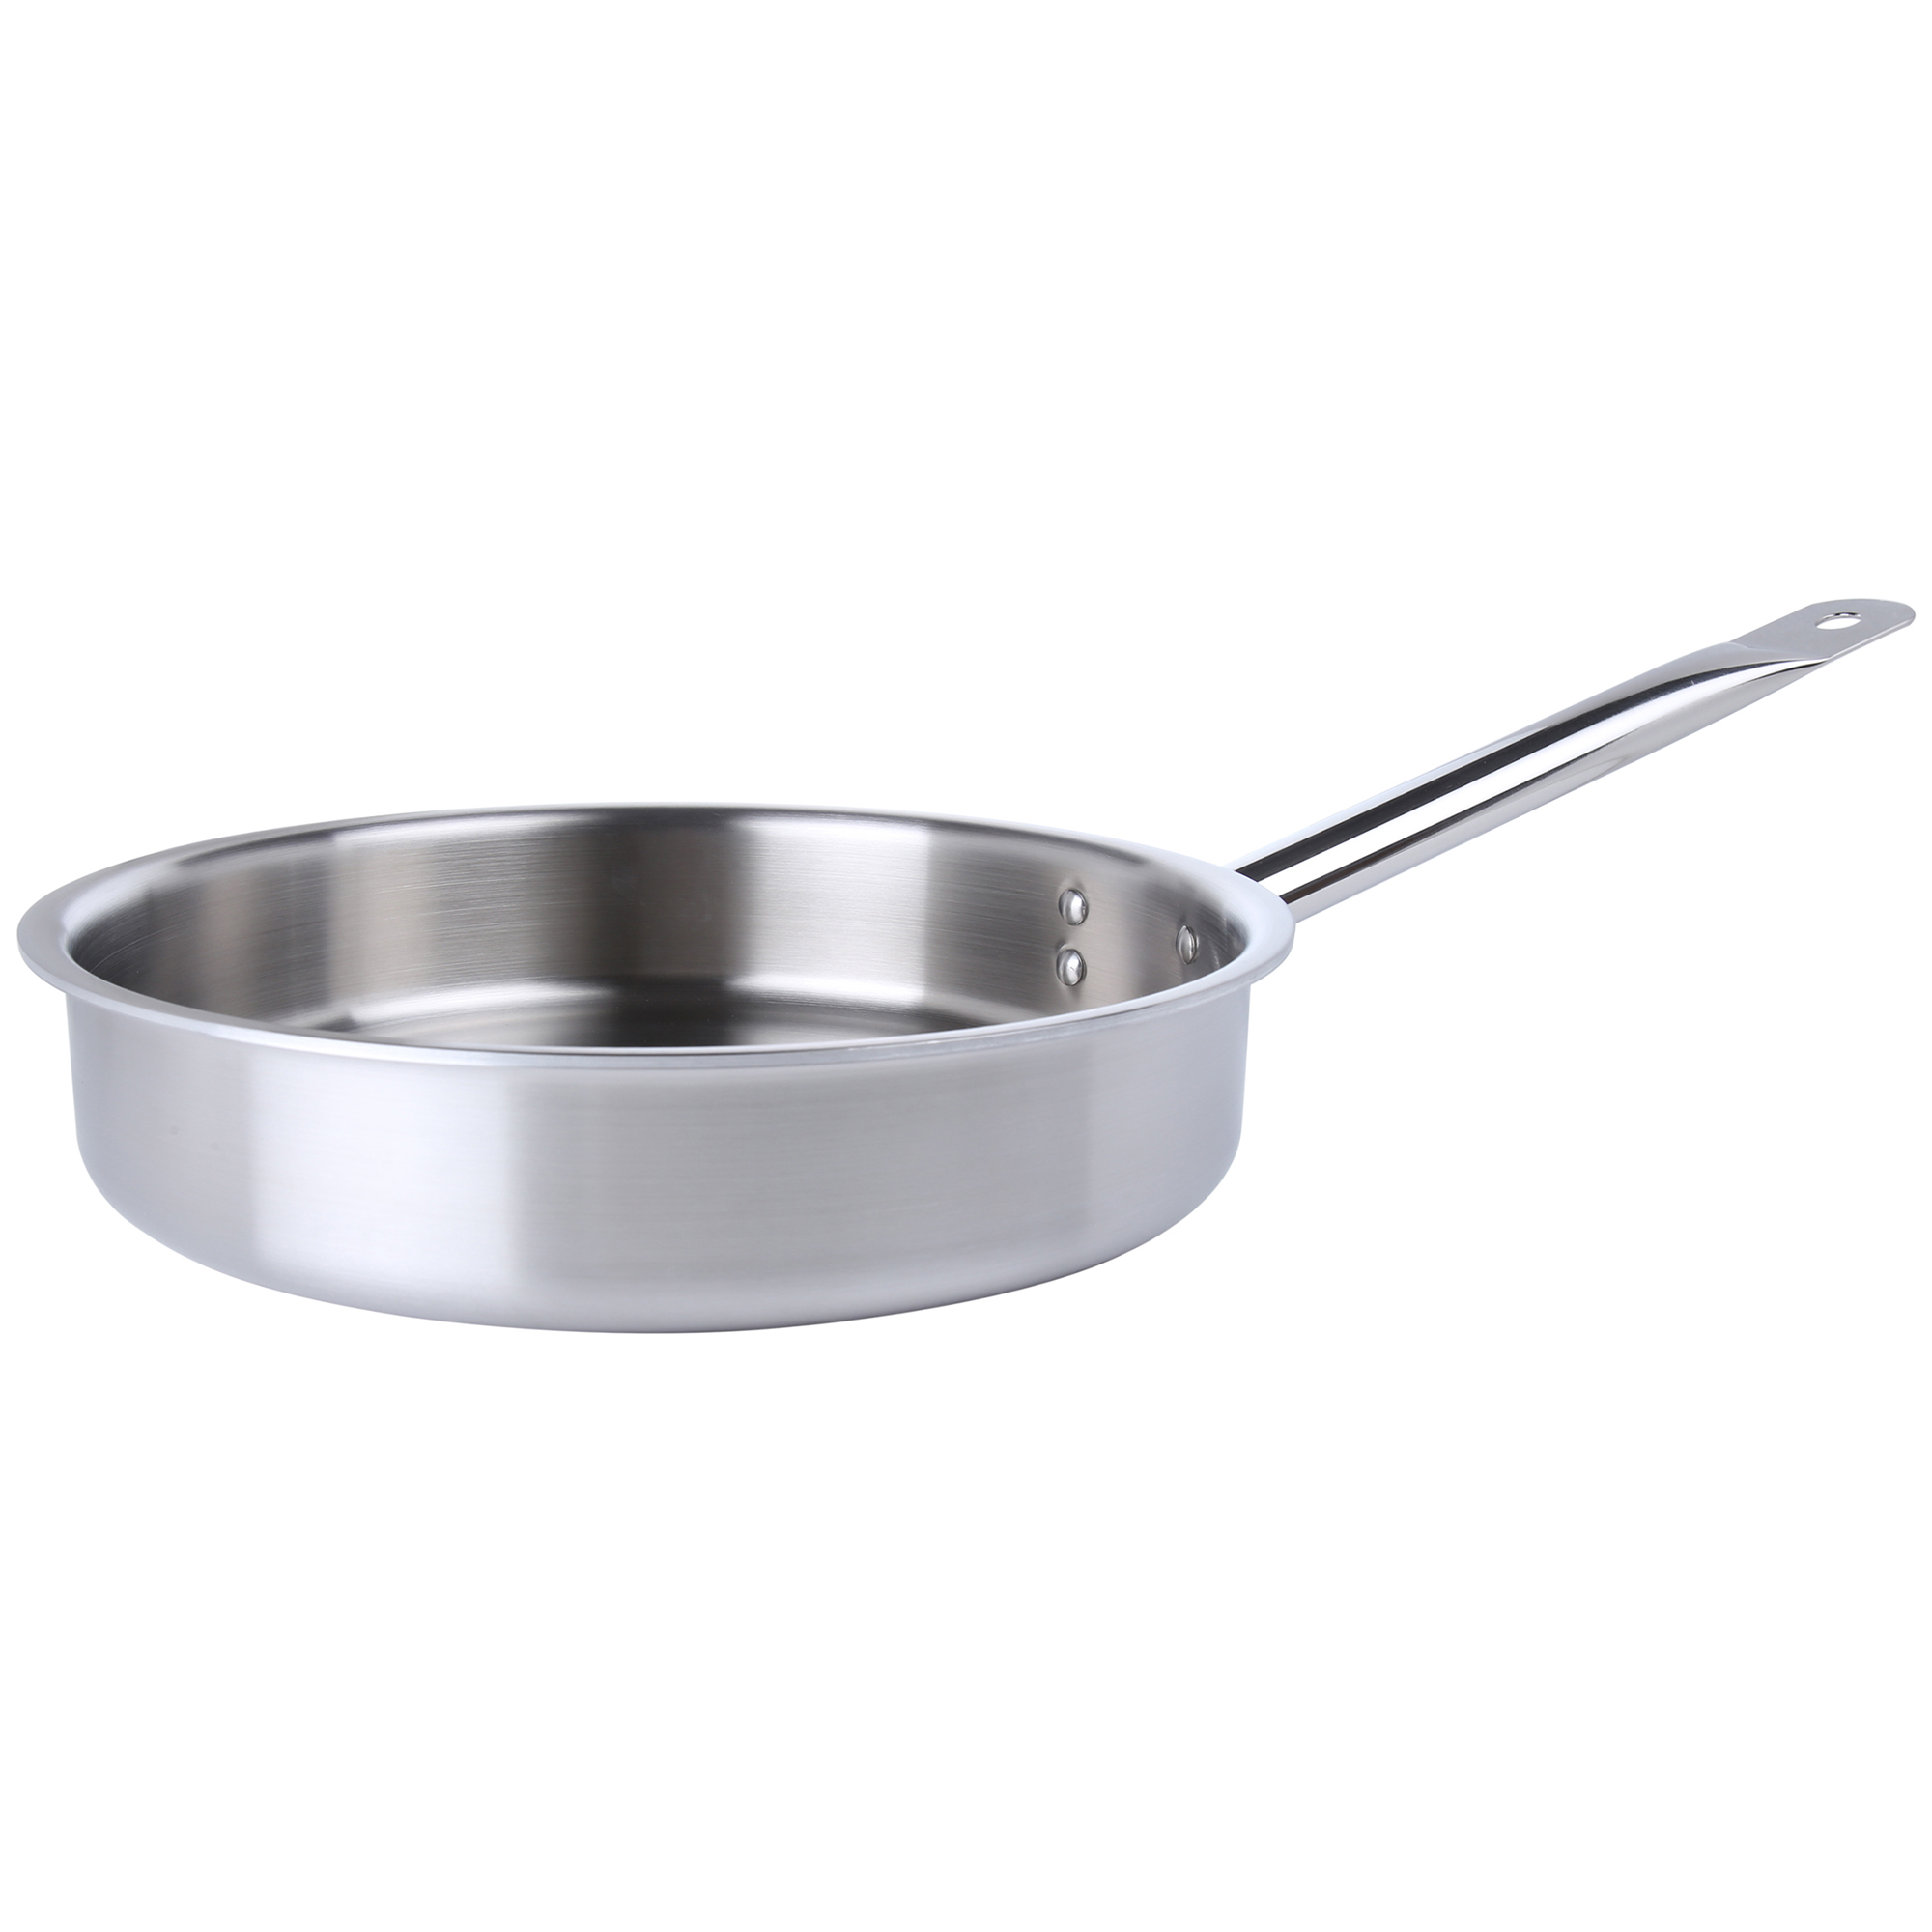 Avon Stainless Steel Professional Cookware Tri Ply Saute Pan